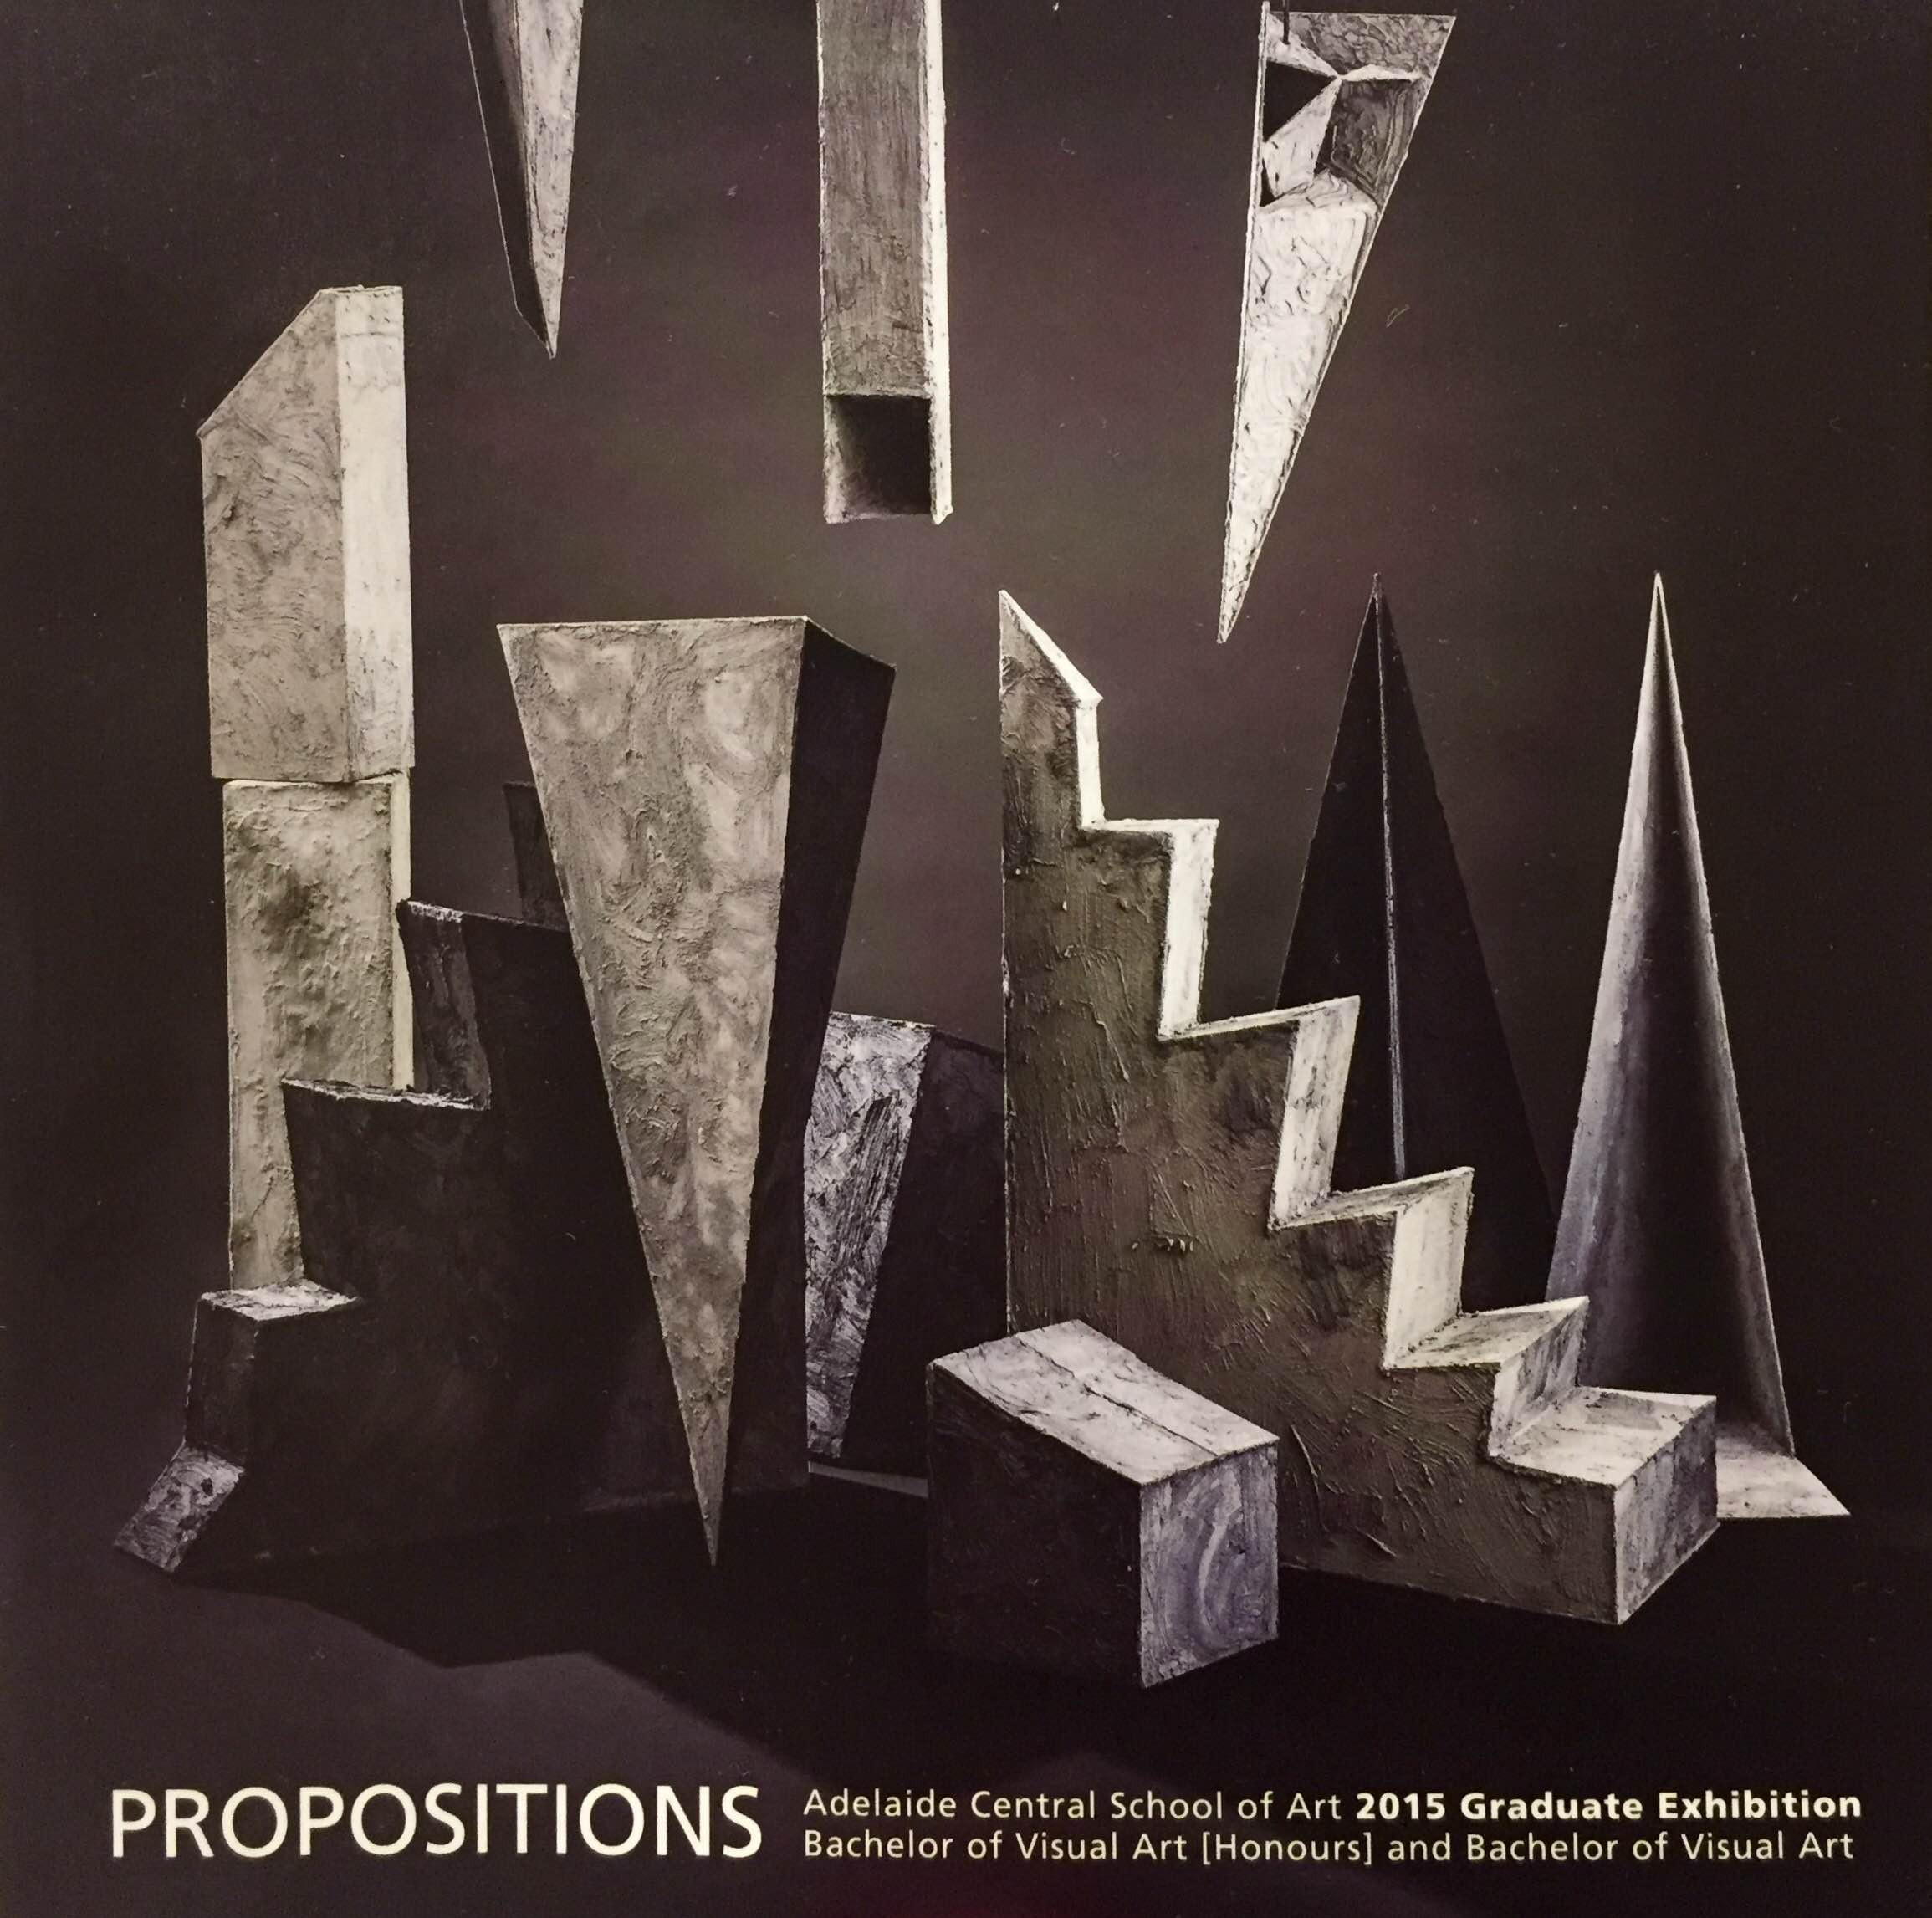 Cover of 'Propositions' catalogue for the Adelaide Central School of Art graduate exhibition, image by James Field